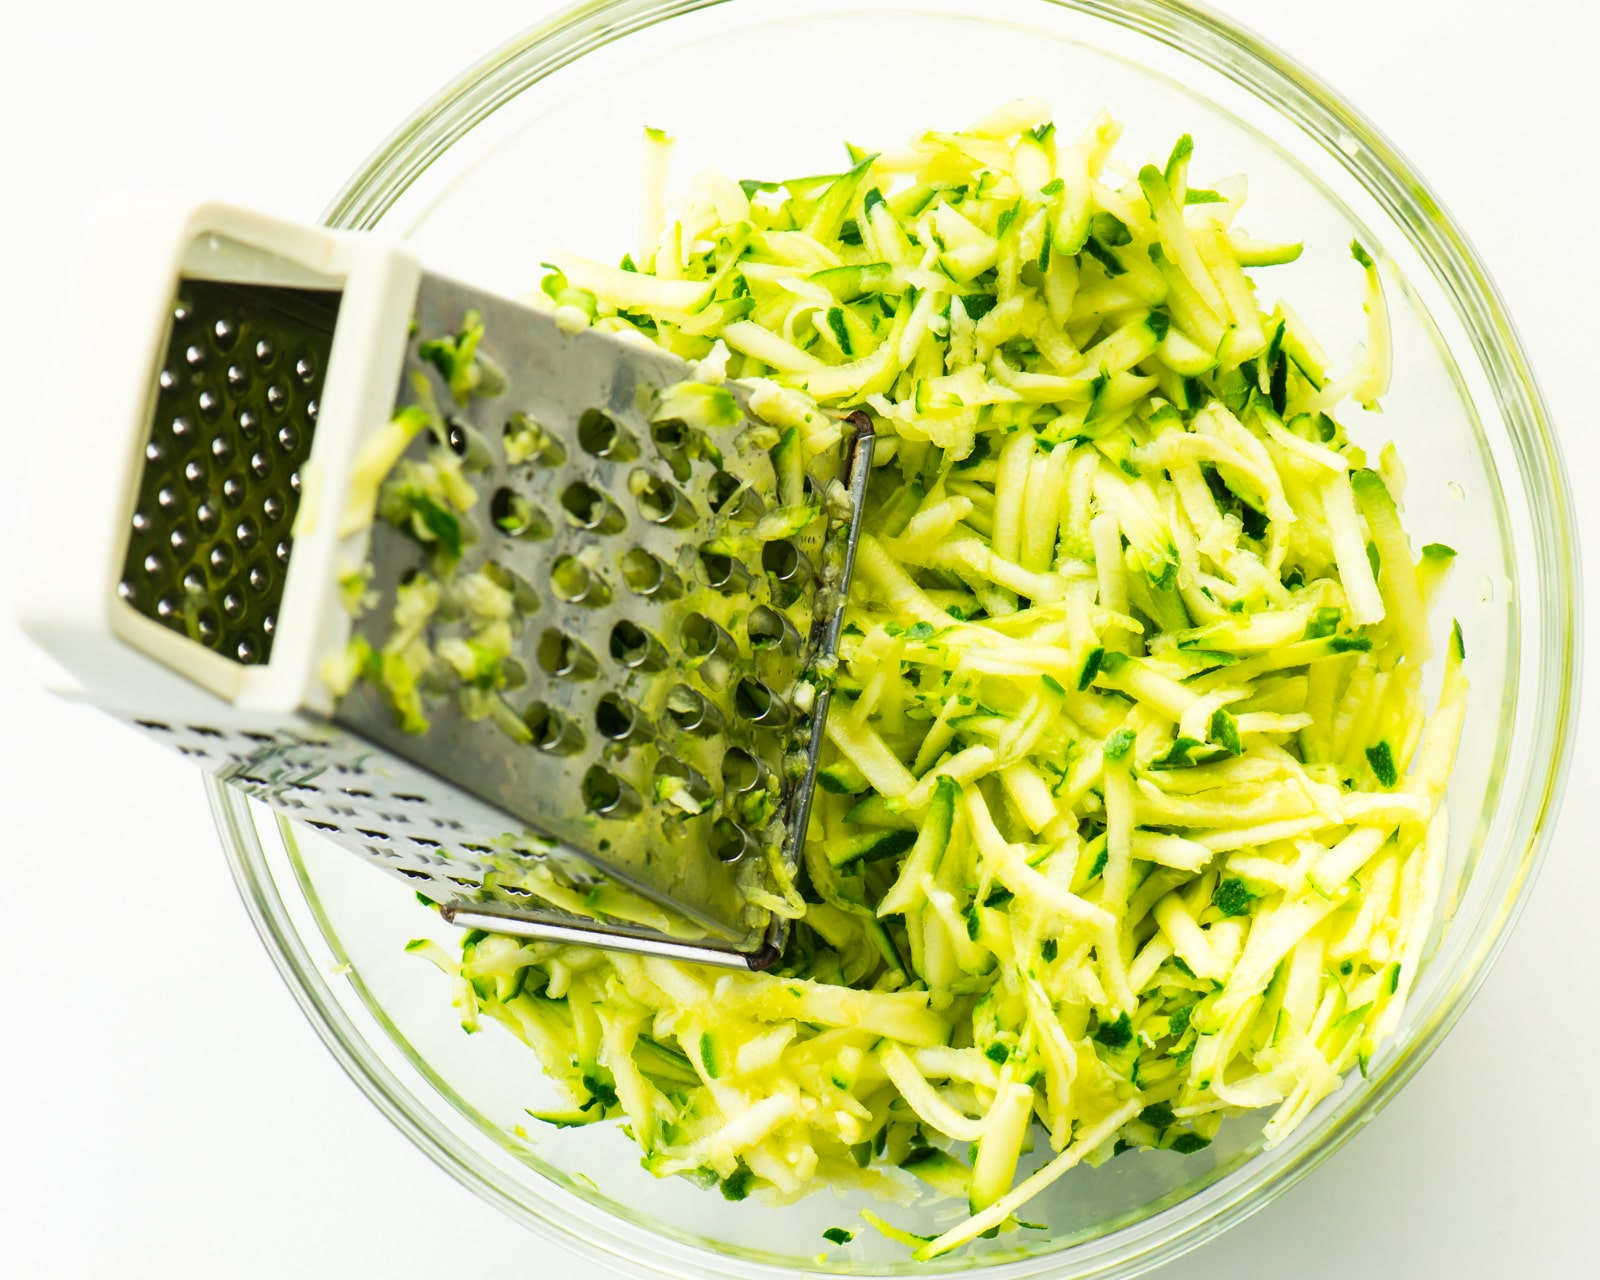 A glass bowl contains shredded zucchini along with a metal shredder.